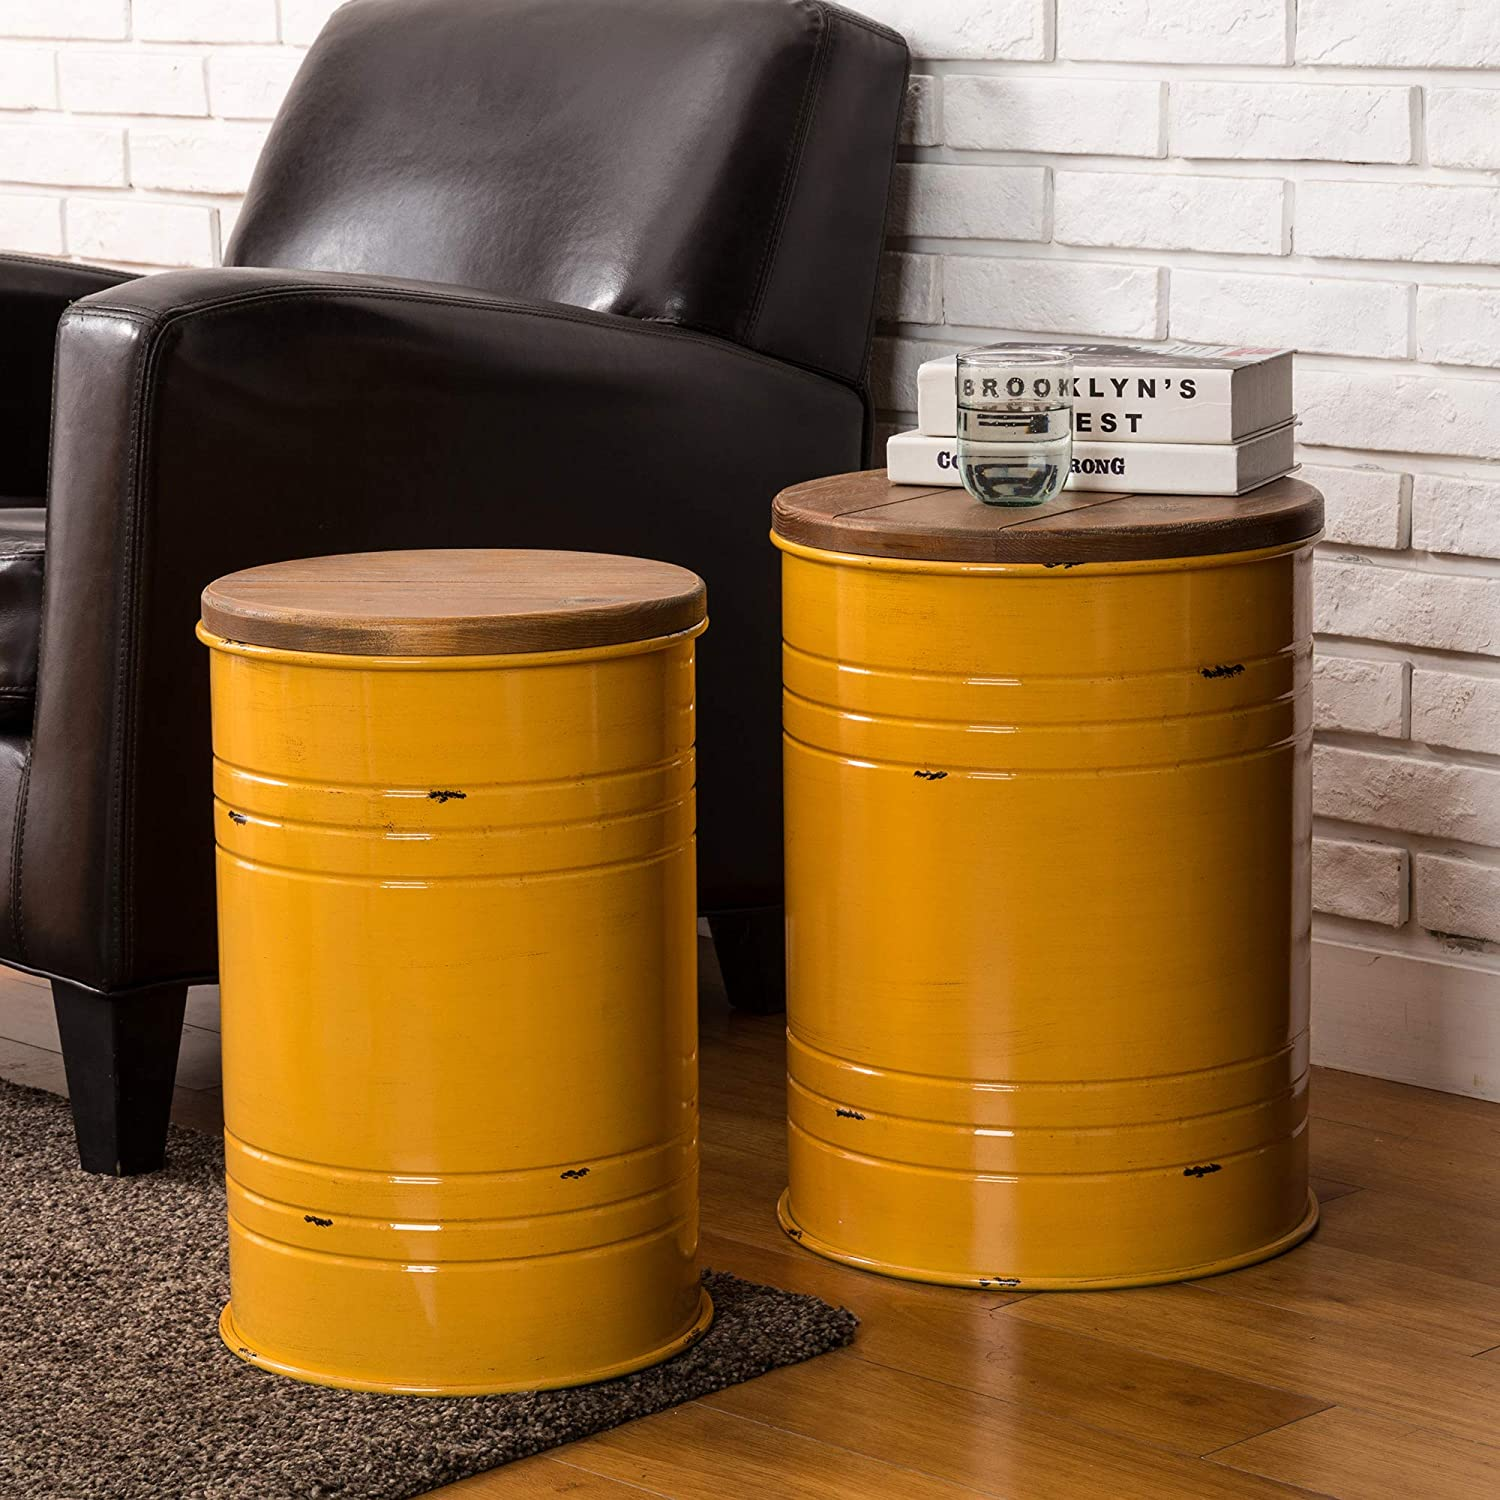 Glitzhome Rustic Storage Ottoman Seat Stool, Farmhouse End Table, Galvanized Metal Accent Side Table Toy Box Bin with Round Wood Lid for Living Room Furniture, Nesting Pieces Two, Yellow